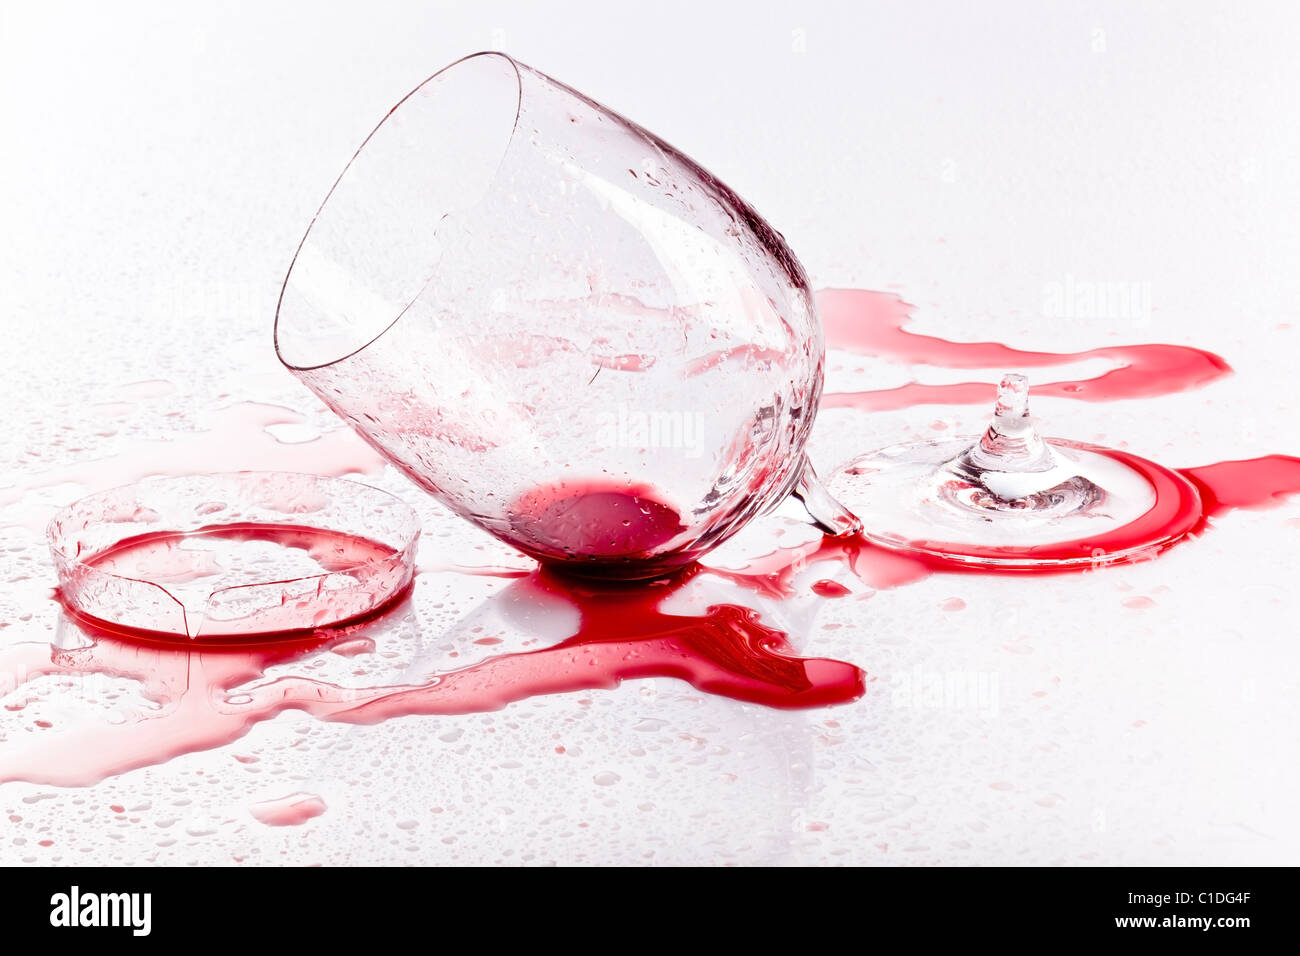 a wine glass broken red wine spilled stock photo 35333439 alamy